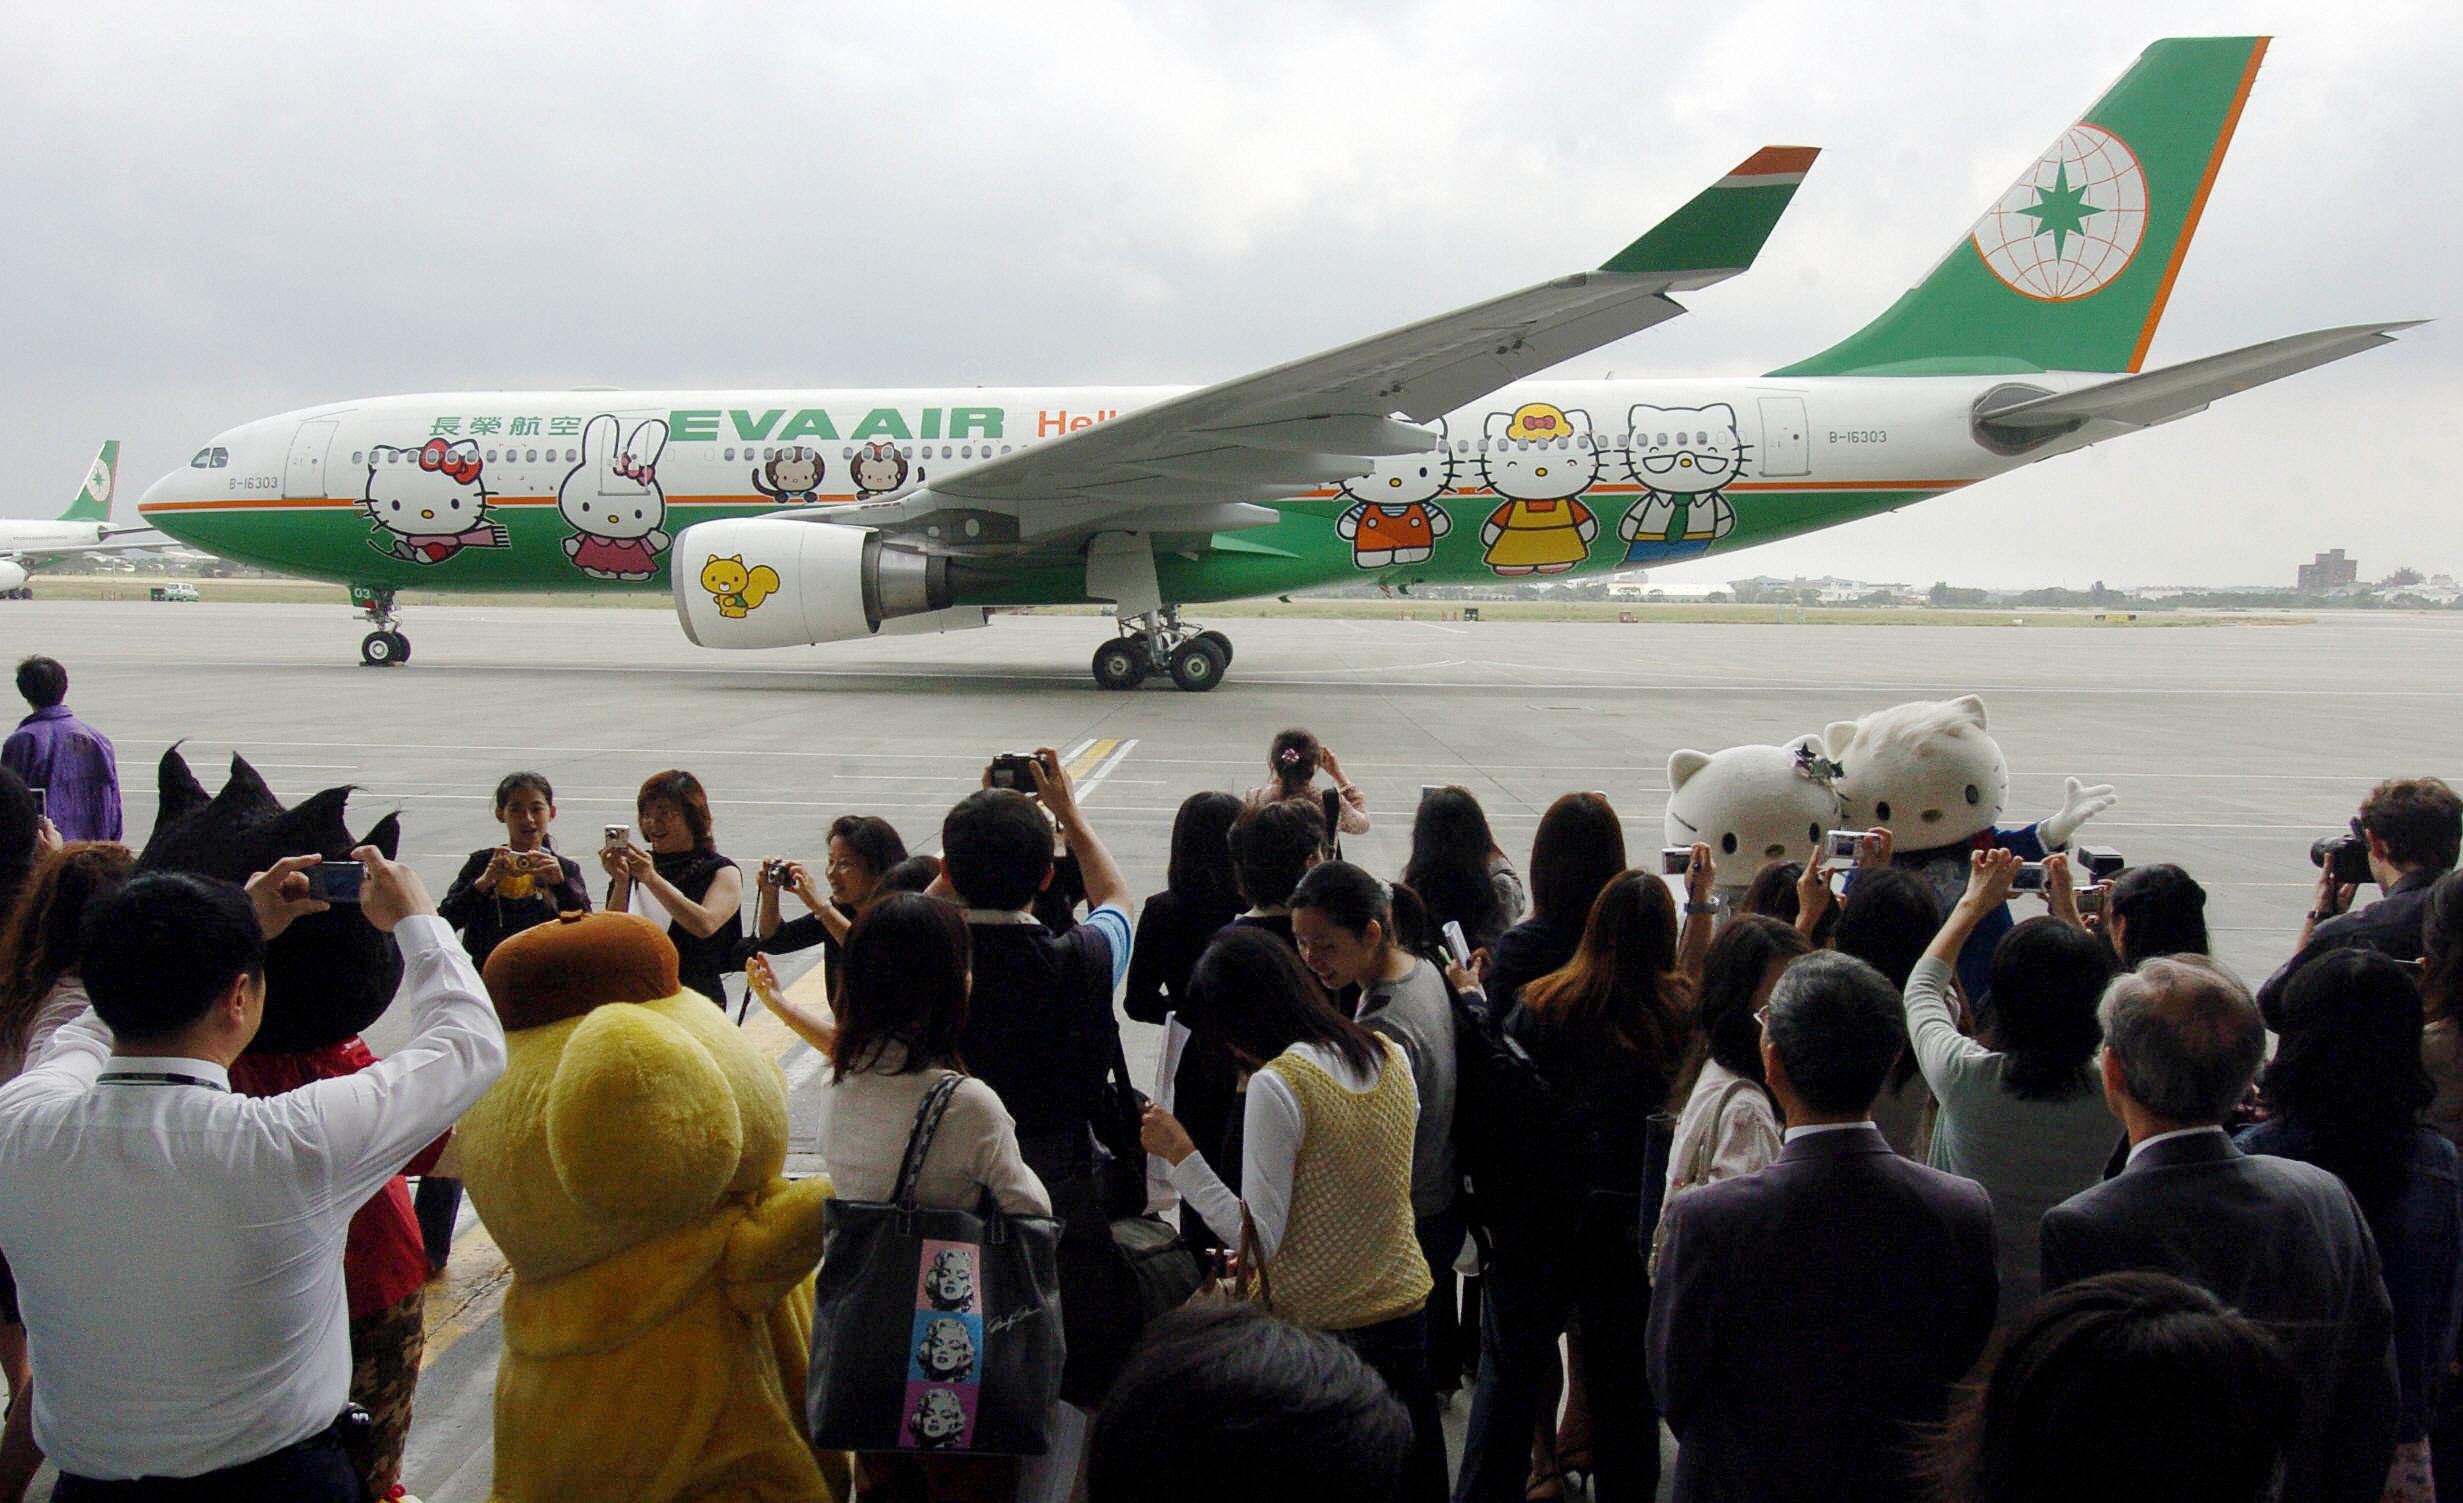 Hello Kitty Themed Planes Are Coming To The U.S.